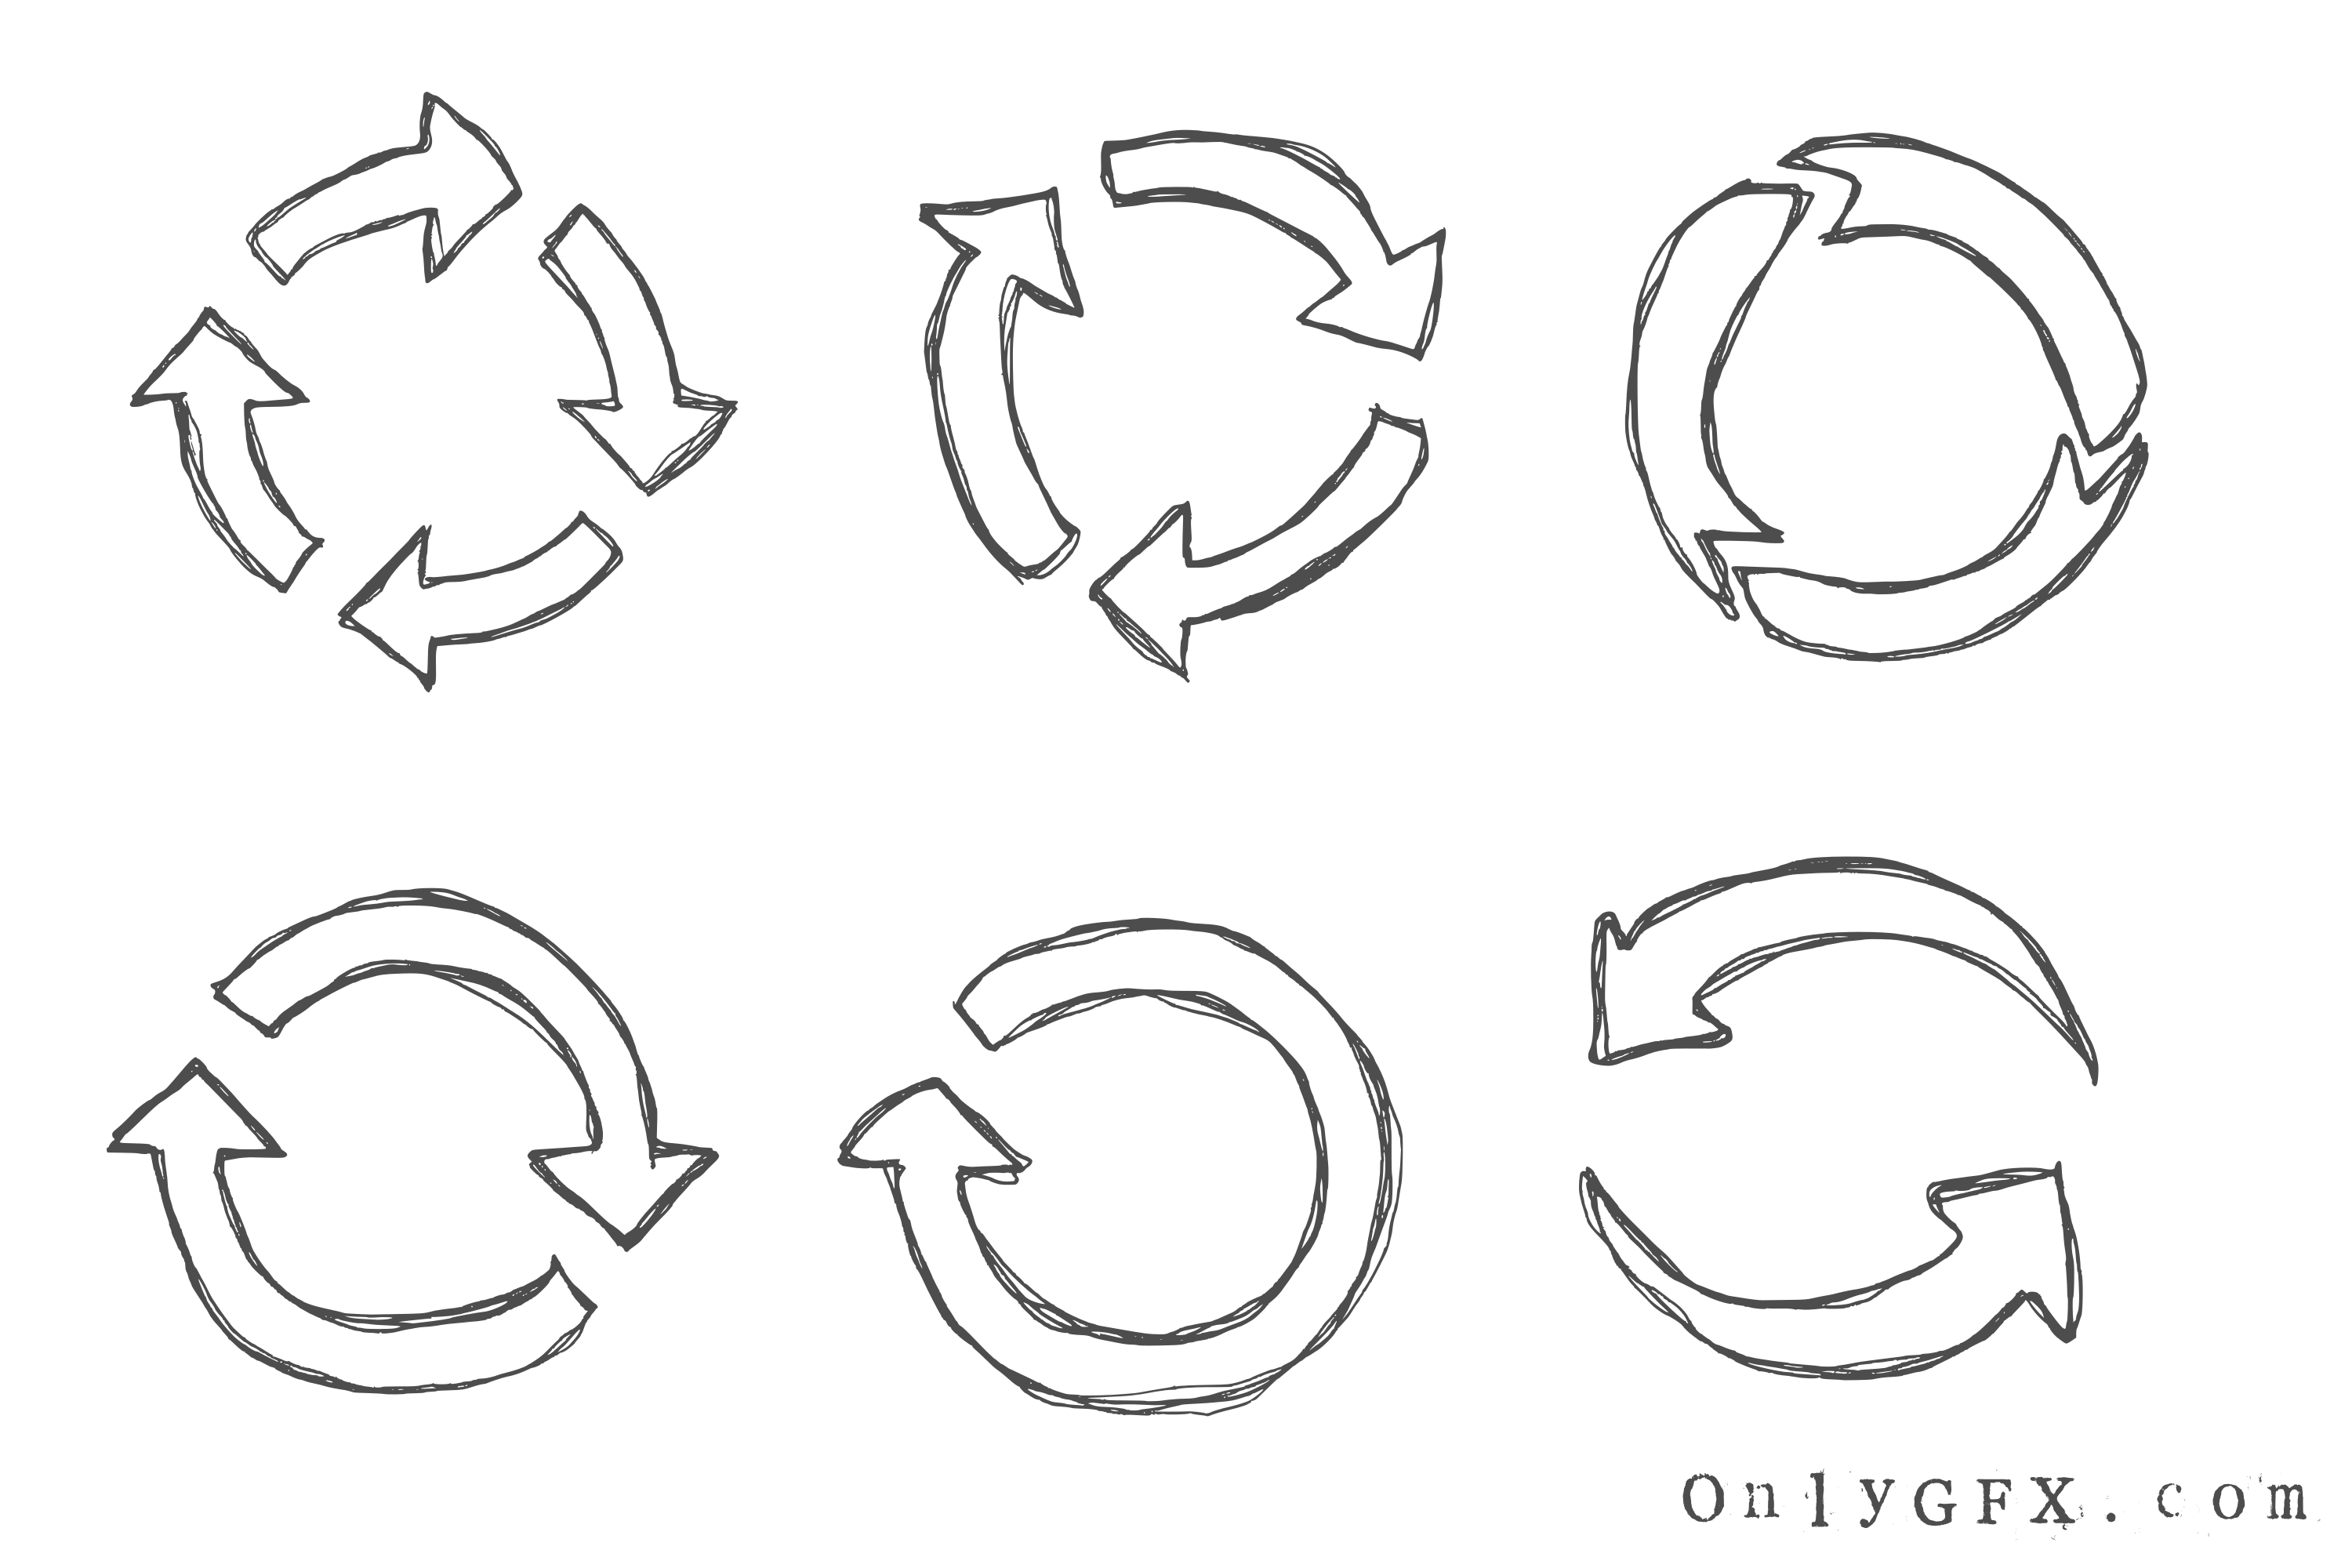 6-circular-arrow-drawing-cover.png